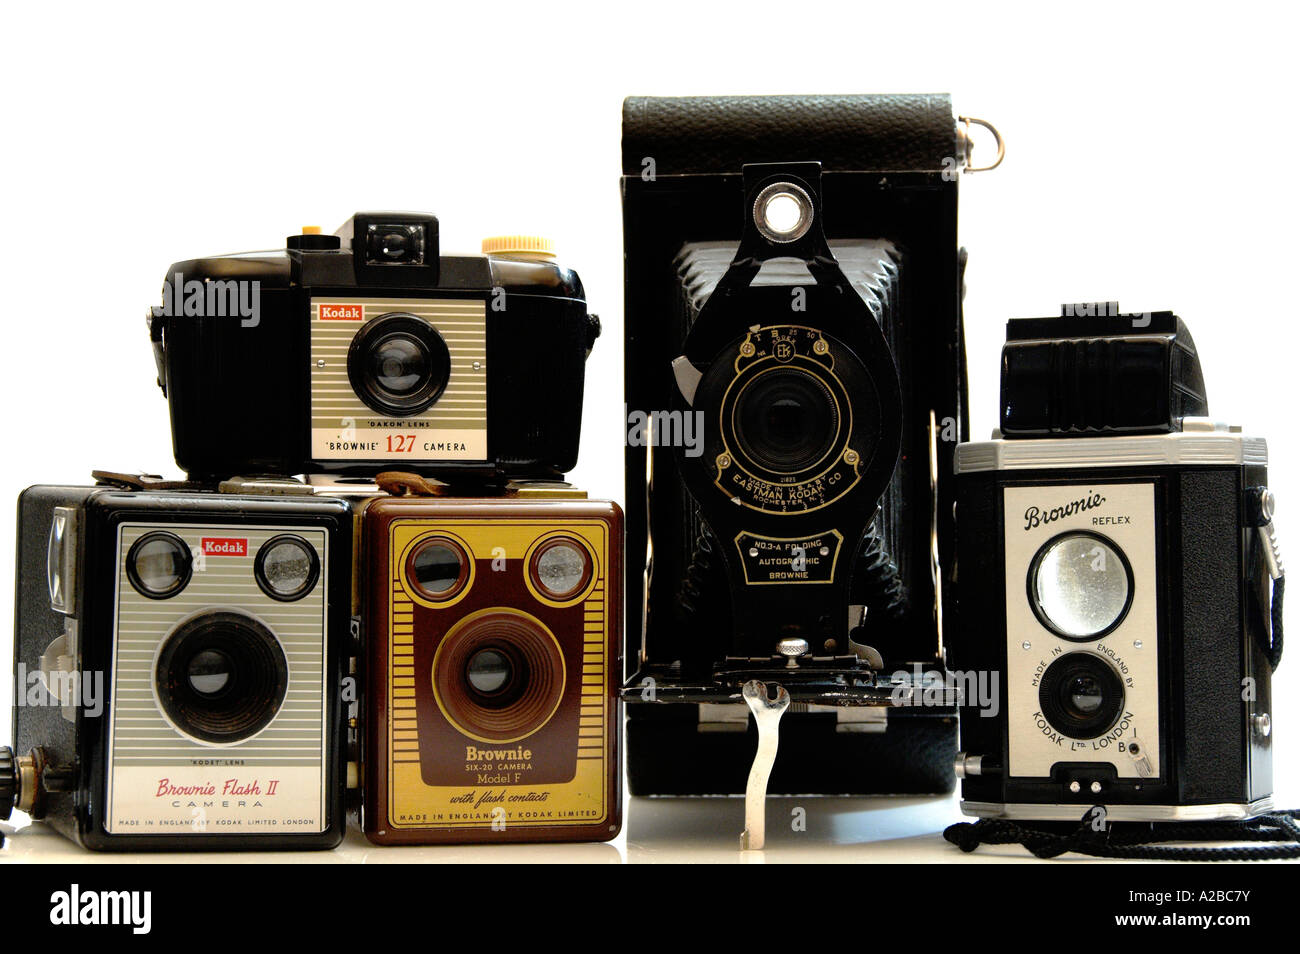 A Collection of old vintage Kodak Brownie Cameras Editorial Use Only - Stock Image